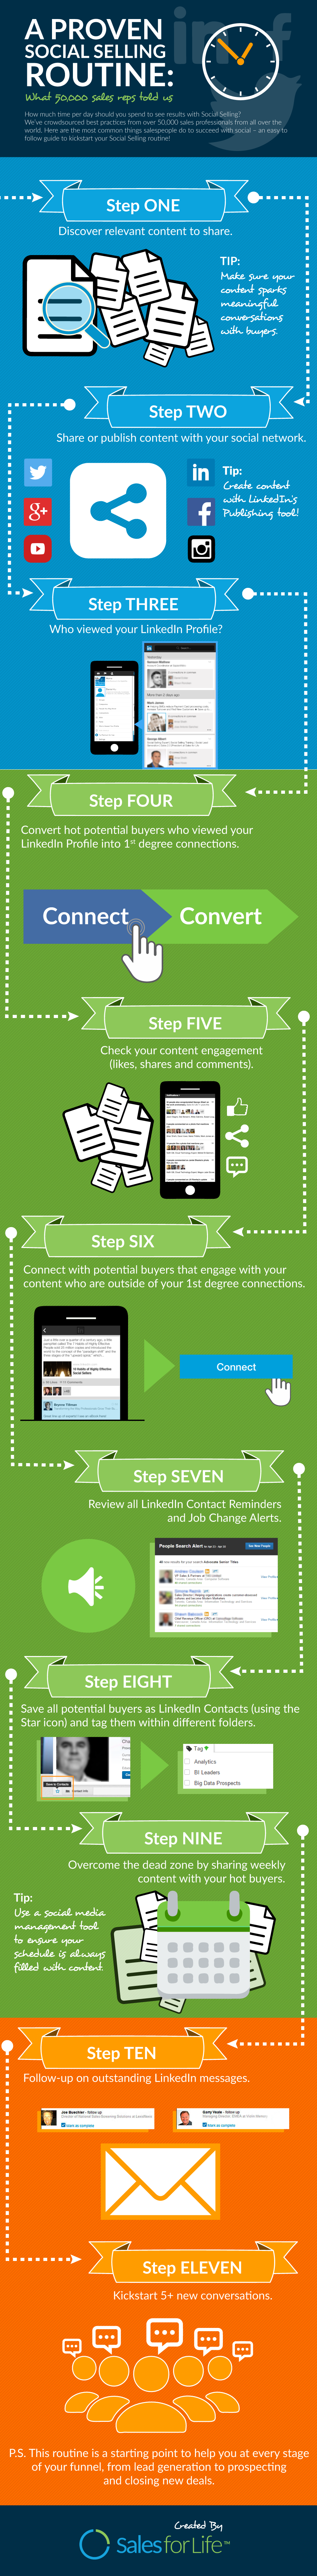 A Proven Social Selling Routine What 50,000 Sales Reps Told Us [Infographic]